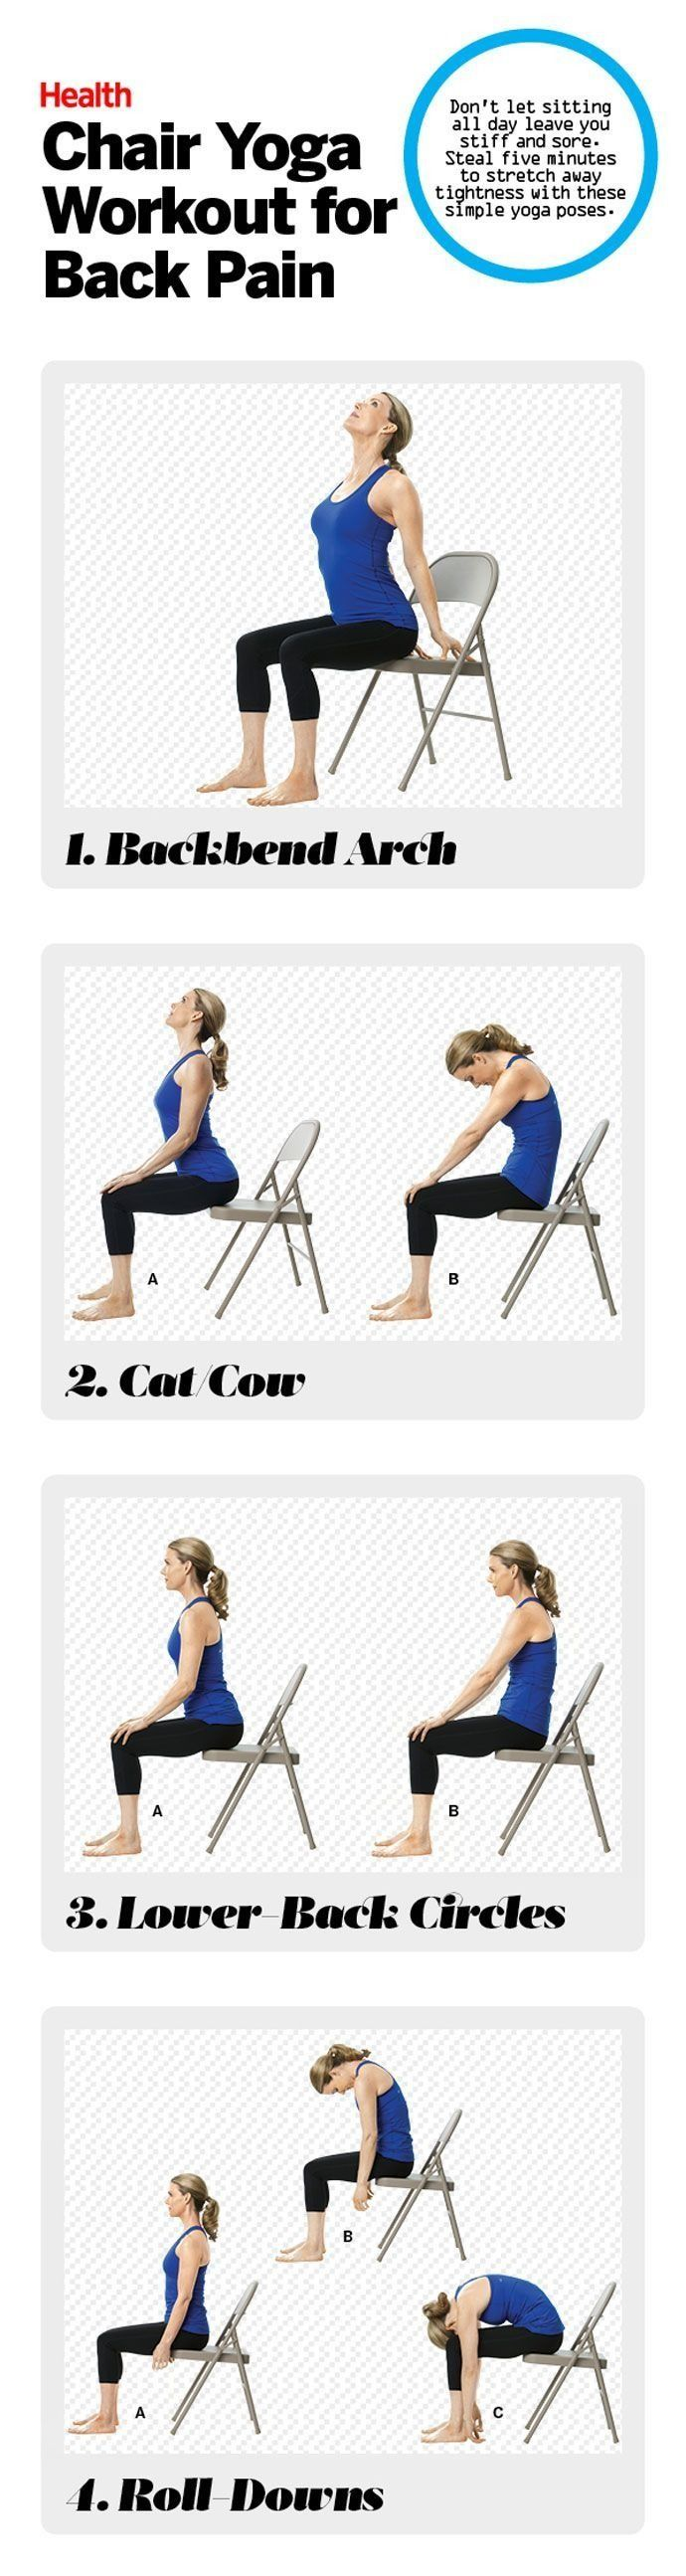 Don't let sitting all day leave you stiff and sore. Steal five minutes to stretch away tightness with these simple yoga poses.